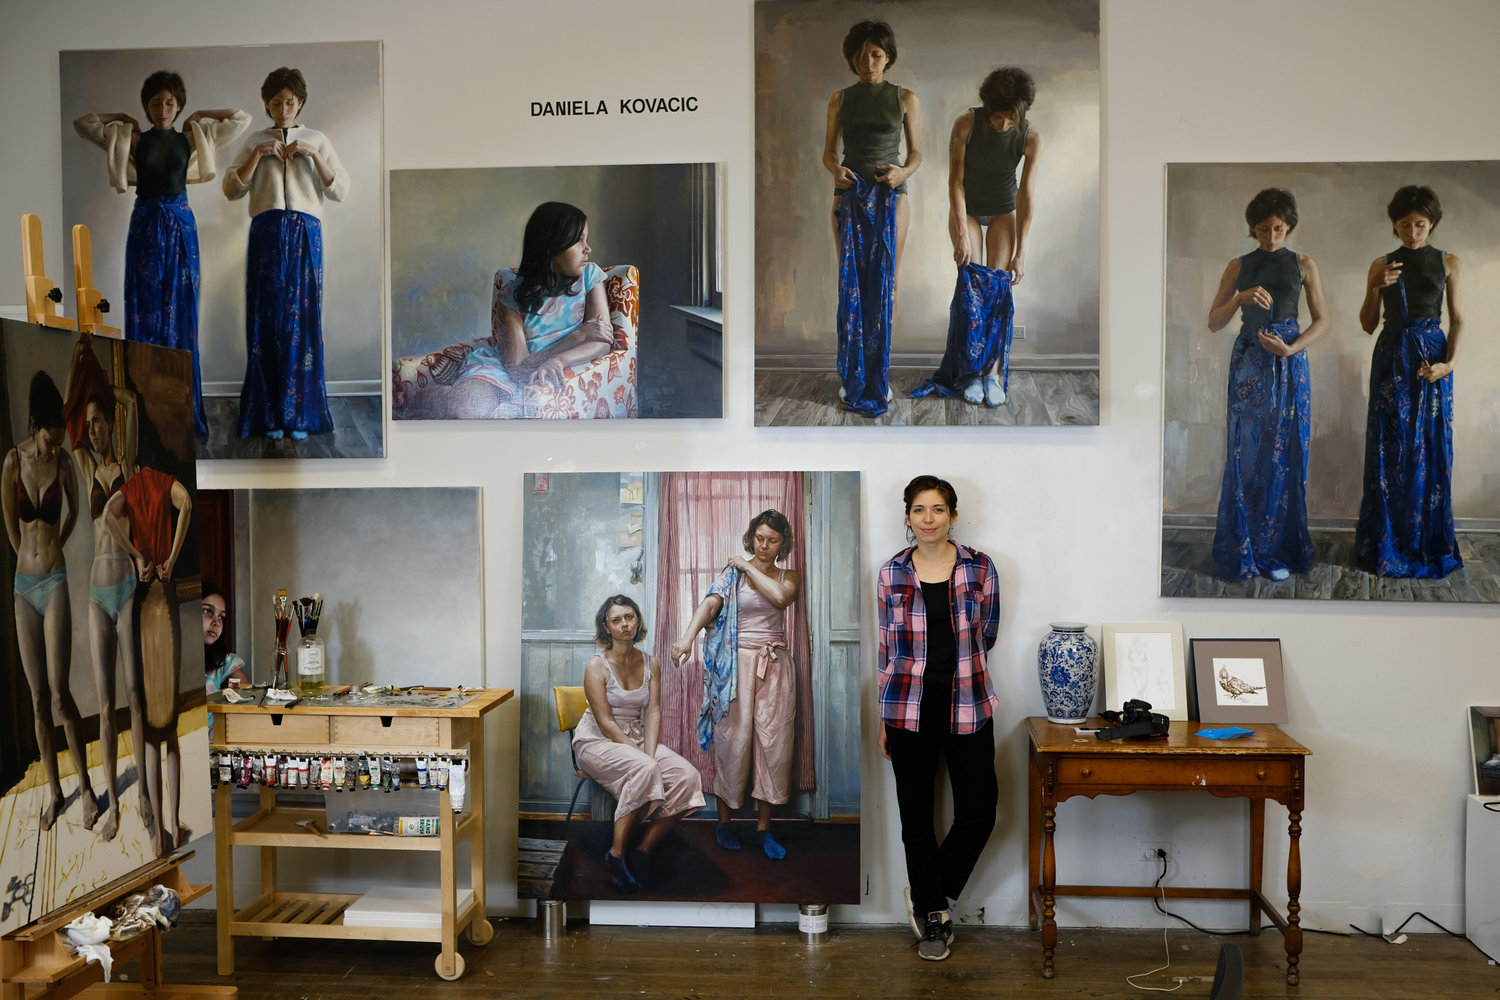 Photograph of Daniela Kovacic in her painting studio by Joerg Metzner w Picturing Evanston